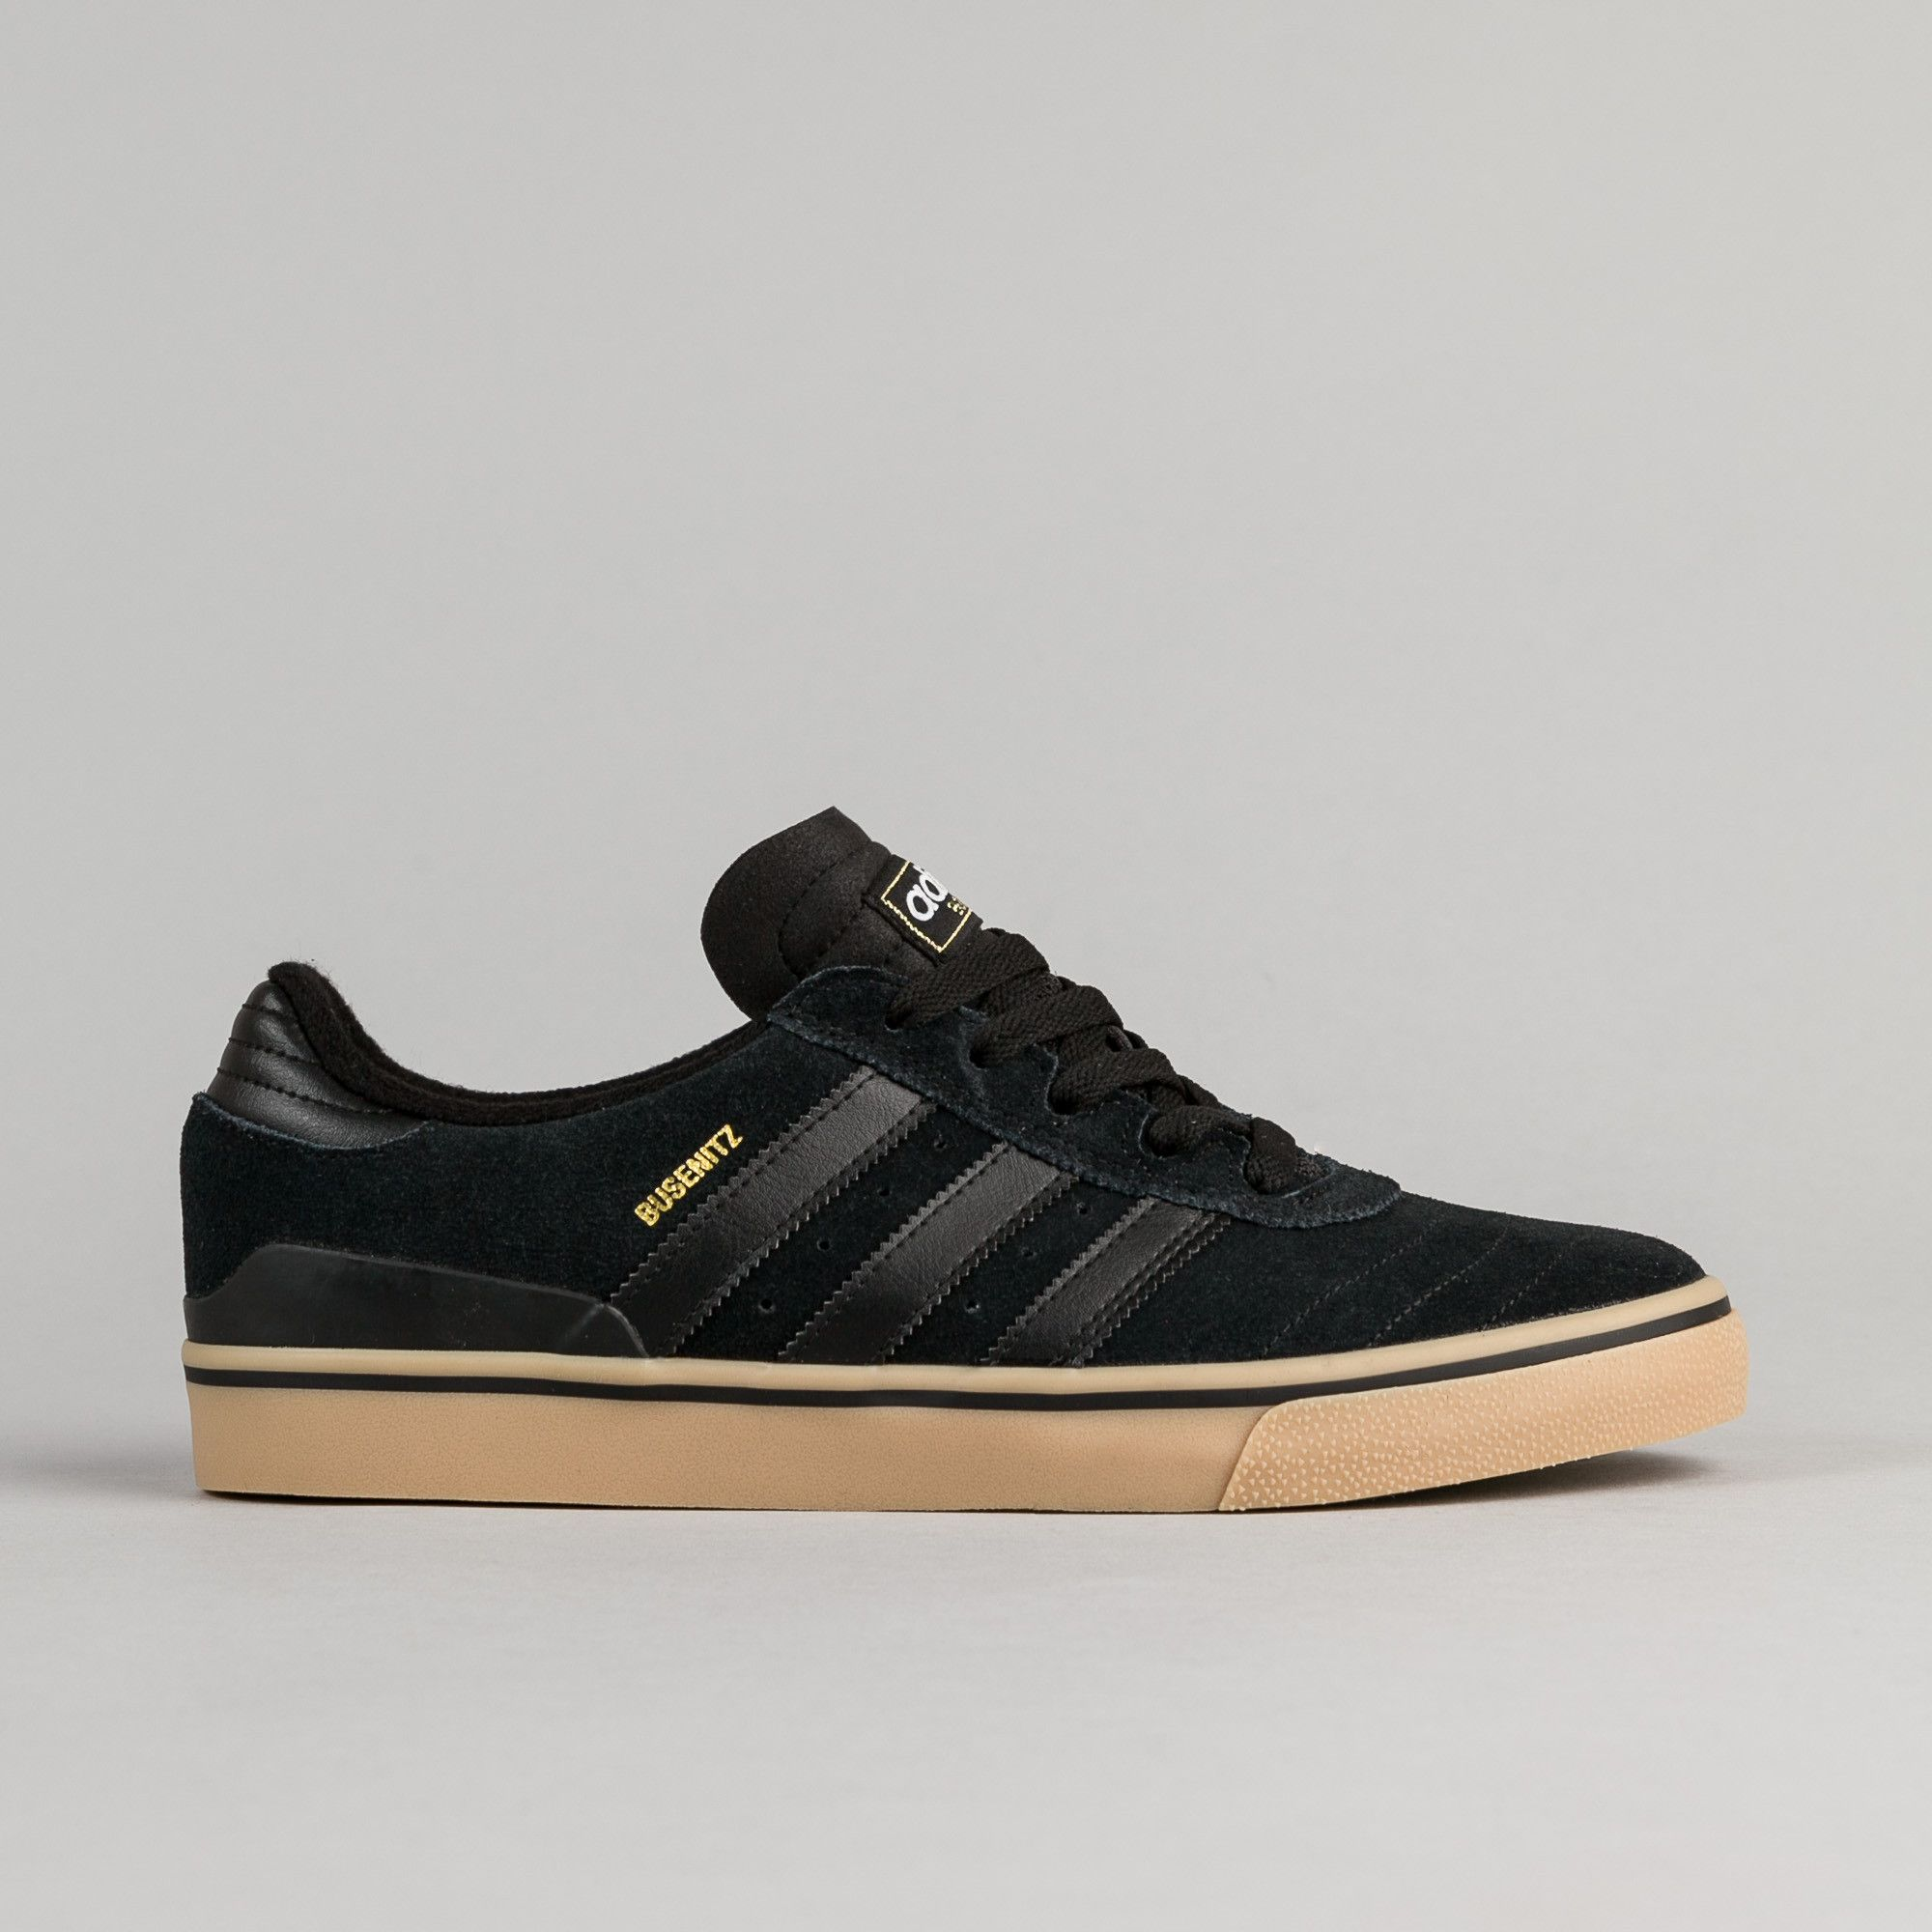 new style cd94e 8a59a Free Shipping  Free Returns  Shop the Adidas Busenitz Vulc ADV Shoes in  Core Black and Core Black  Gum at Flatspot, premium skateboard store since  1995.